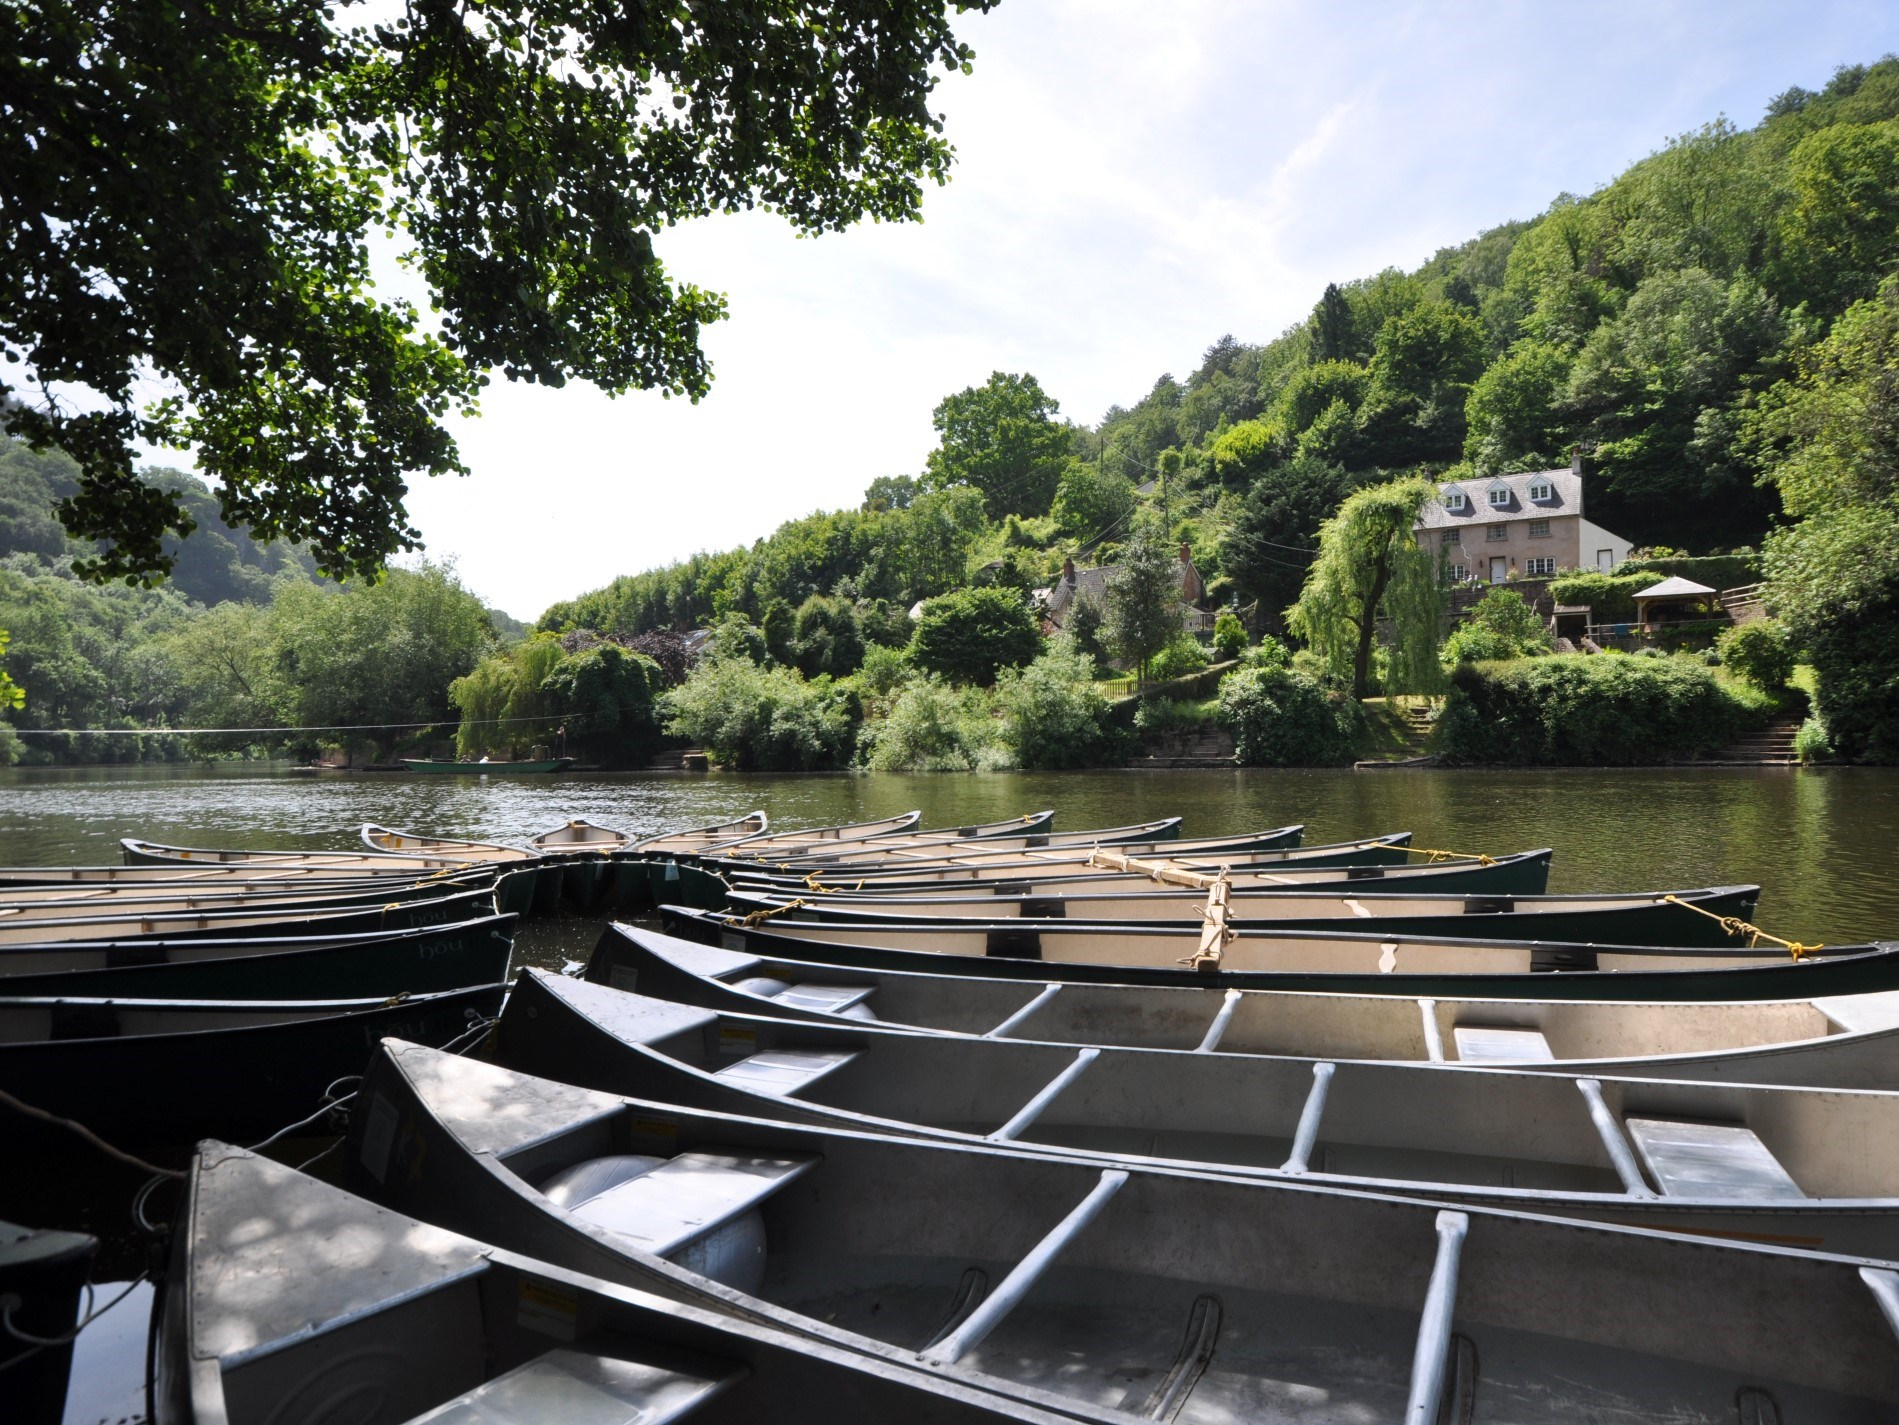 Why not enjoy a day on the River Wye